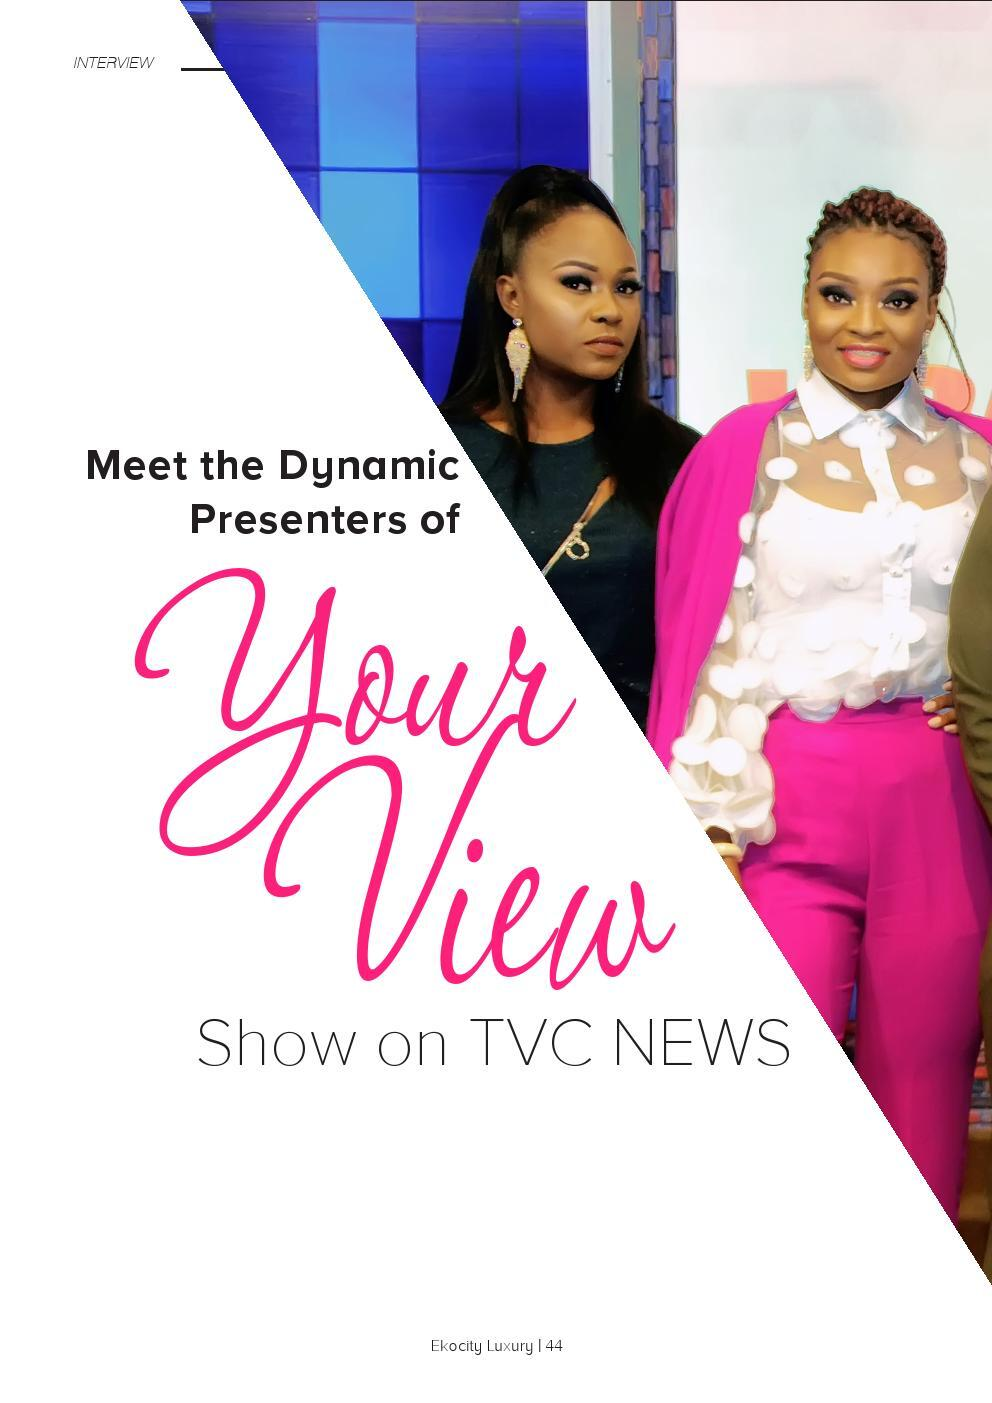 Page 44 of Meet 6 Nigeria  Presenters of your View show on TVC News